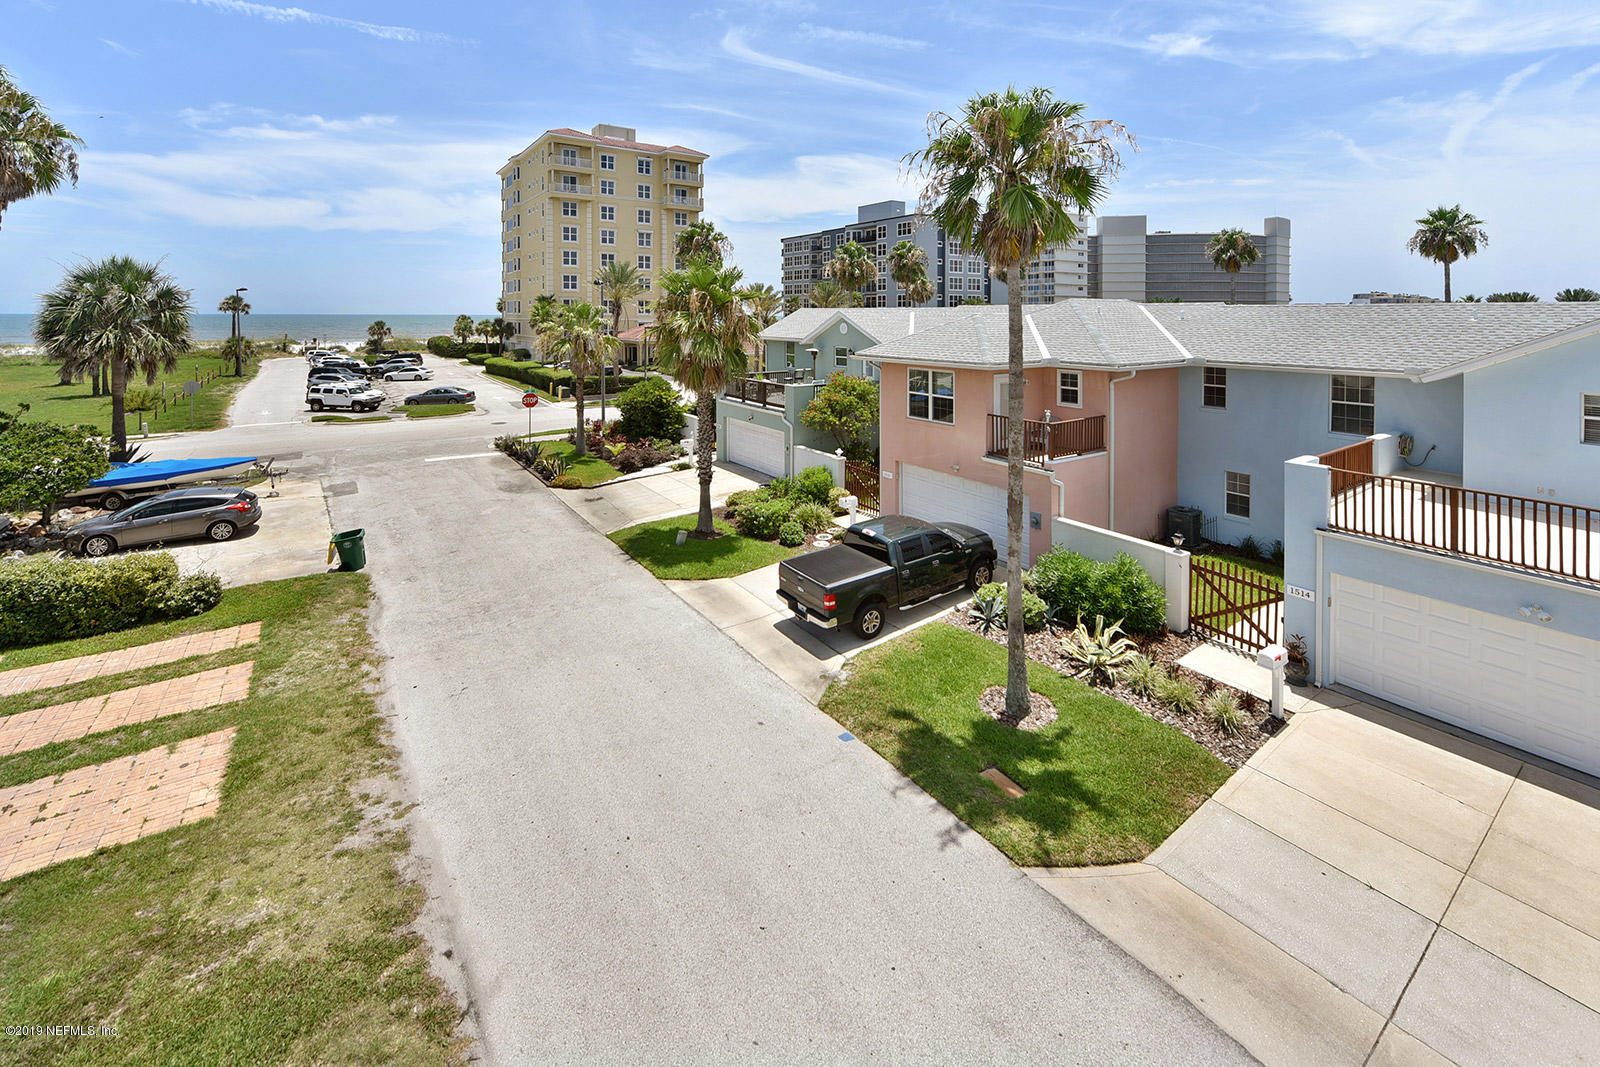 Details for 1299 Atlantic Avenue, Daytona Beach, FL 32118